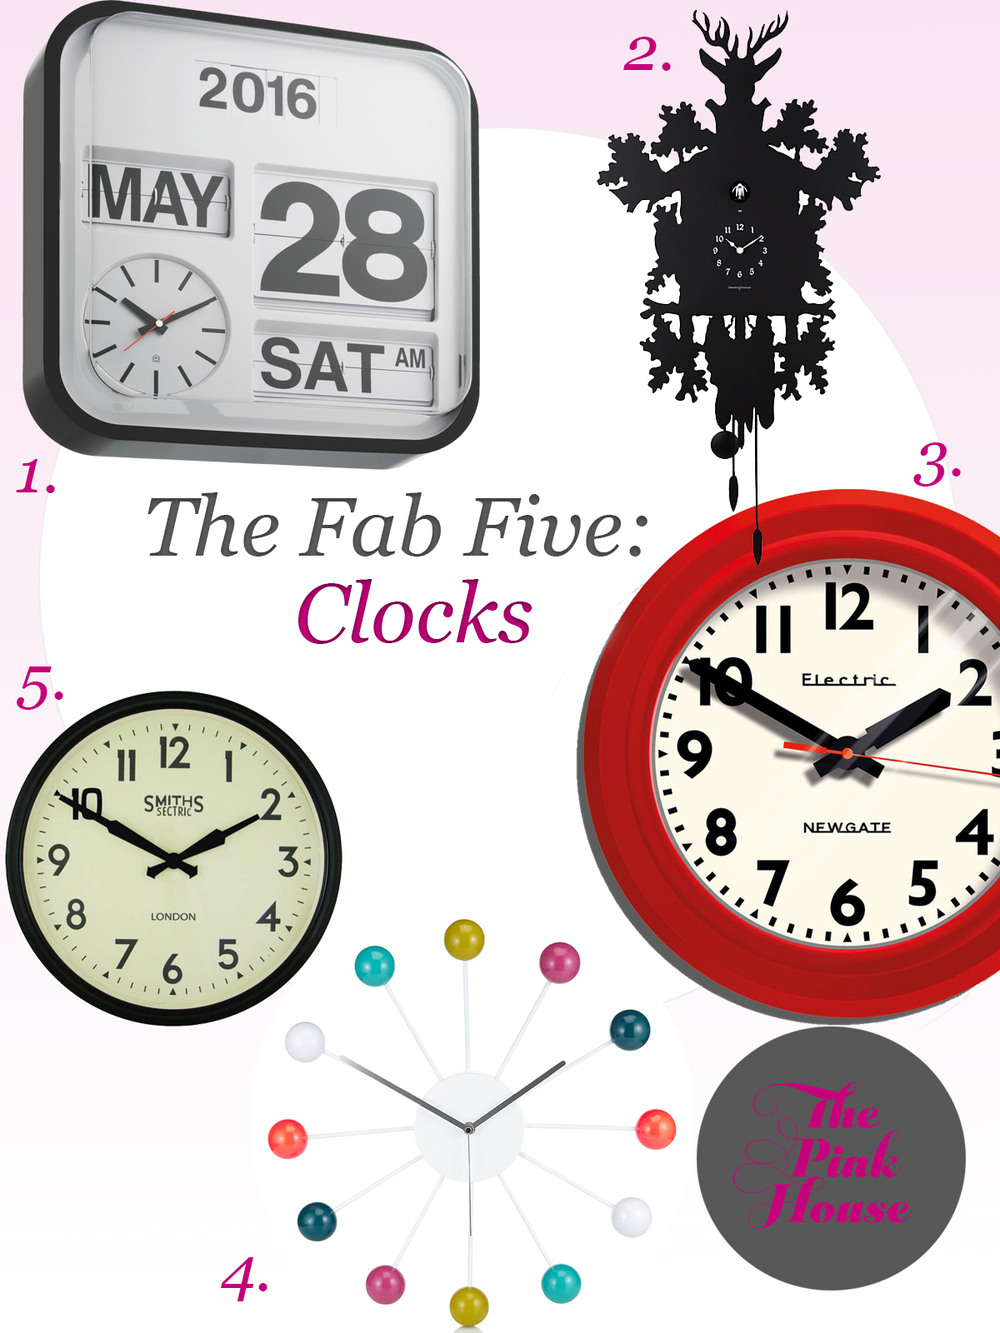 Cool clocks for sale